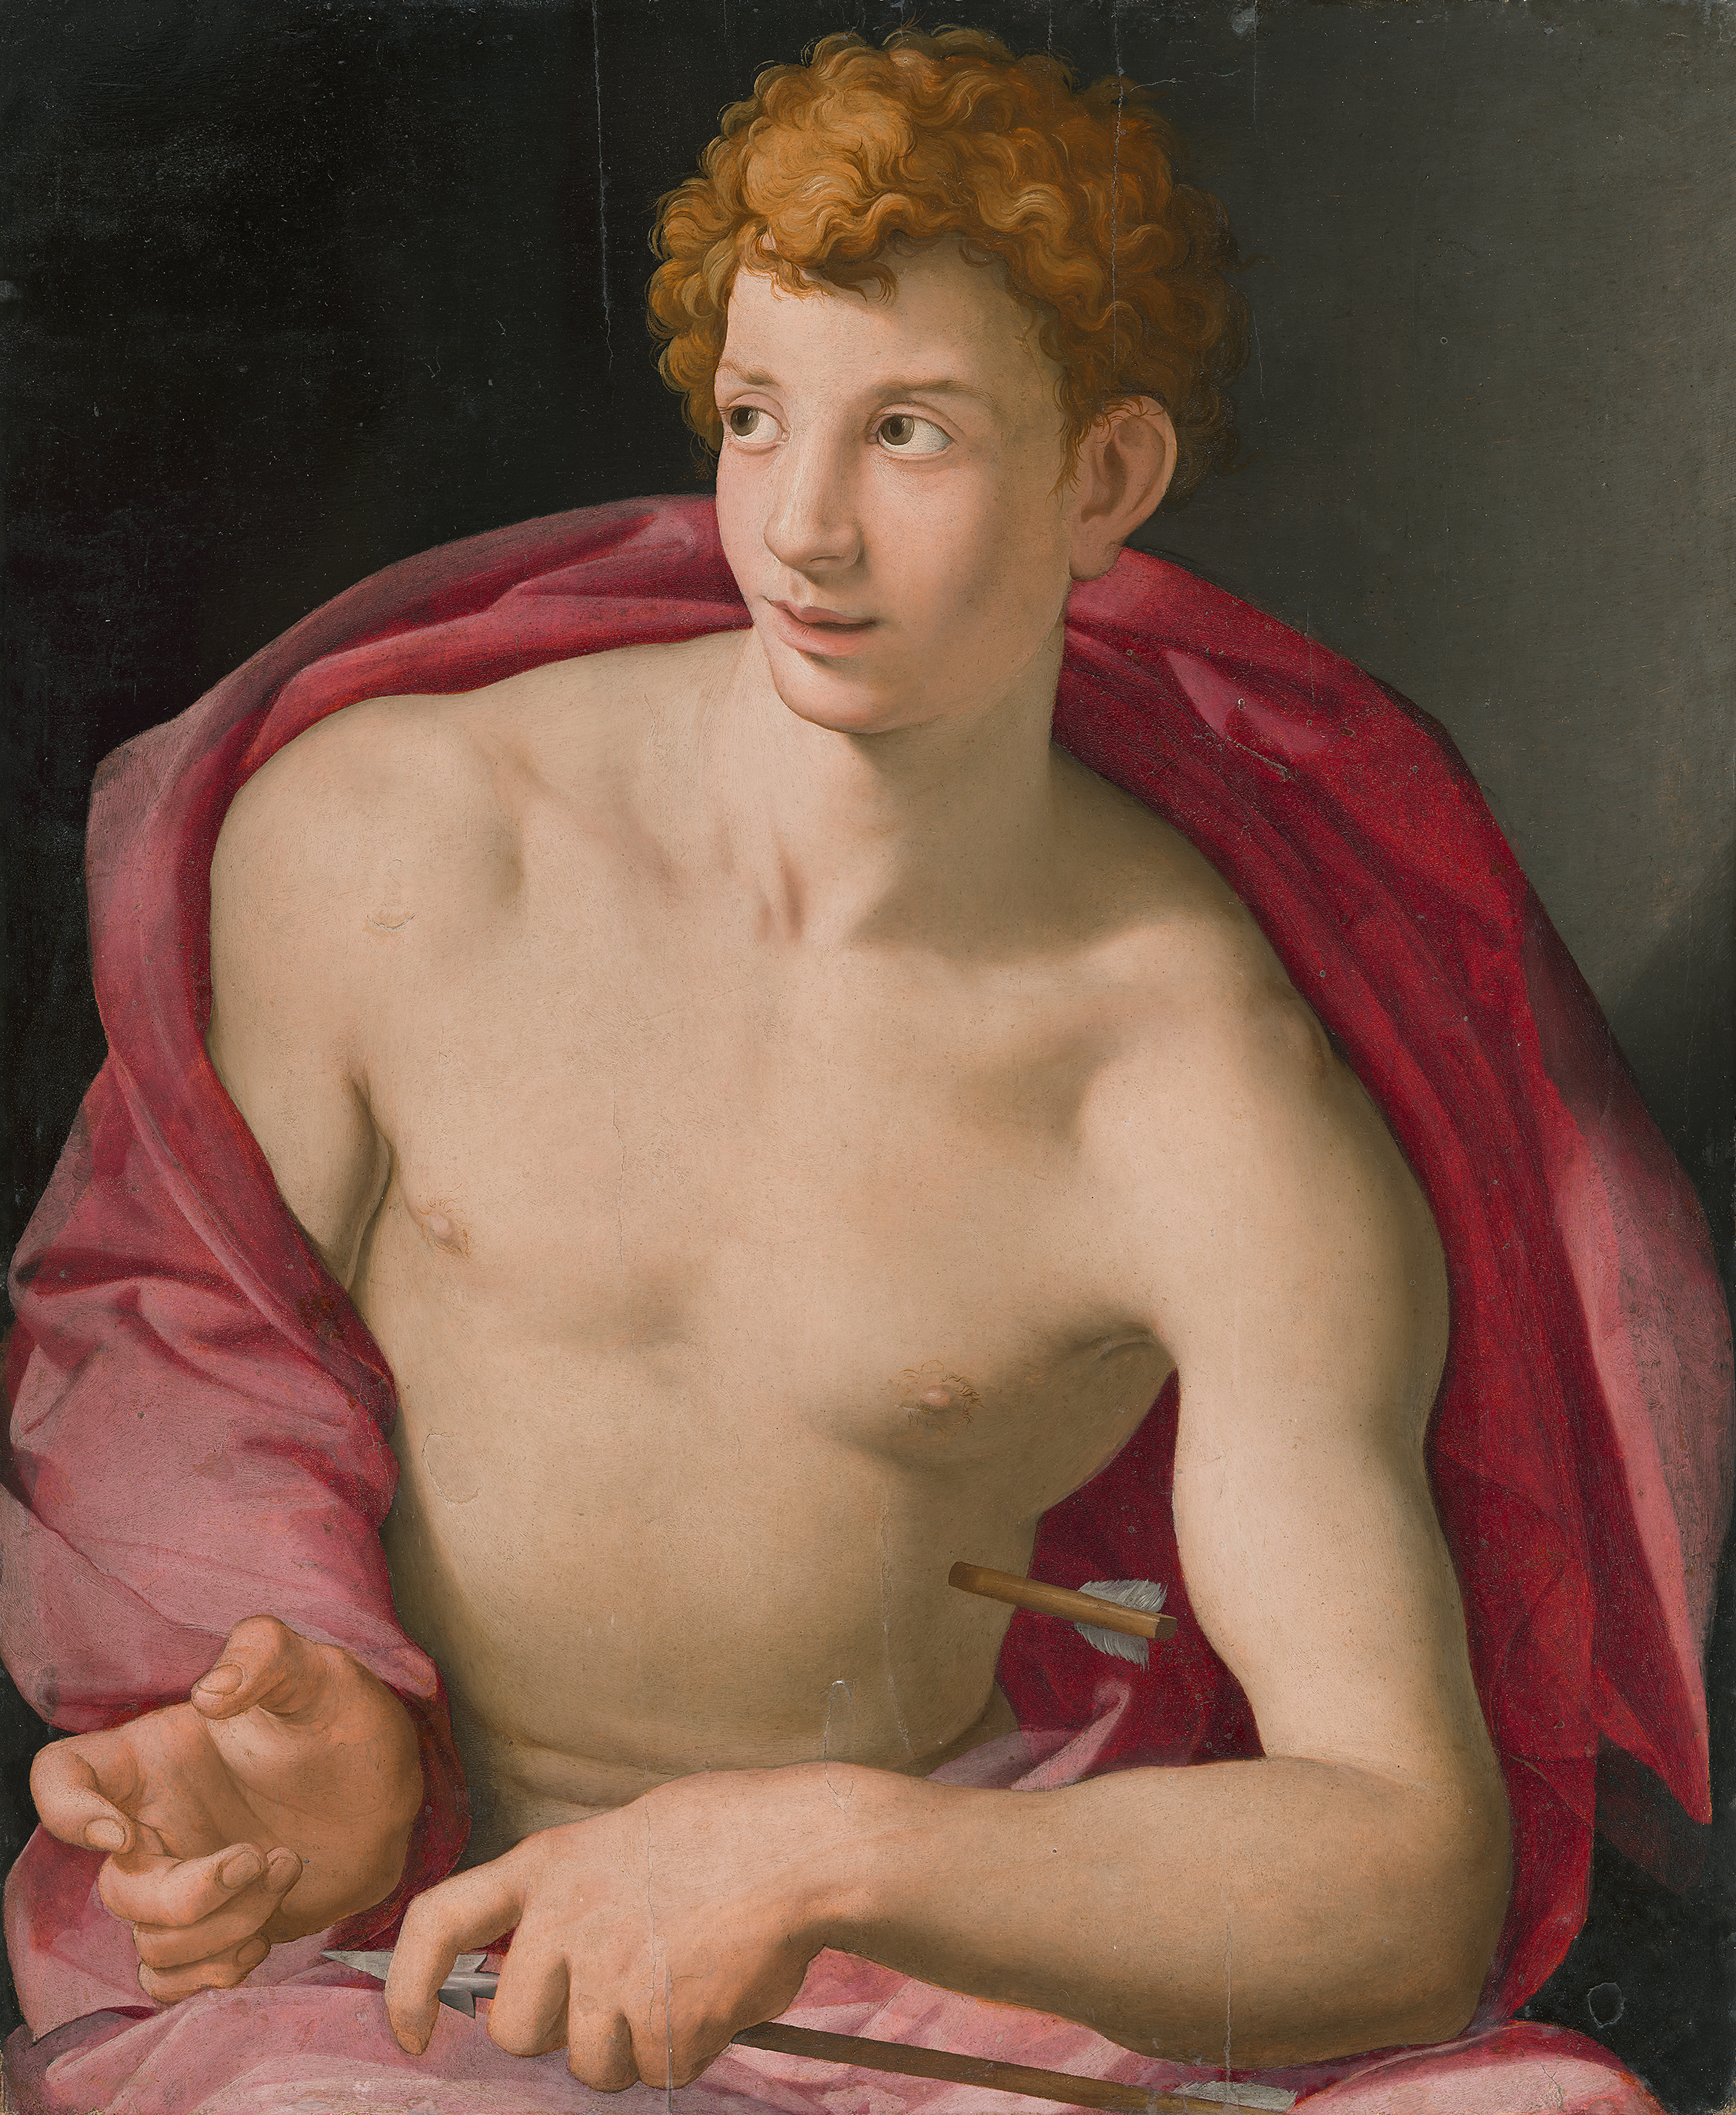 BRONZINO'S PORTRAIT OF A YOUTH AS ST SEBASTIAN. 87X76.5 CM, OIL ON LIME-WOOD PANEL, PAINTED IN 1533 WHEN THE ARTIST WAS 29. (FROM MUSEO THYSSEN-BORNEMISZA, MADRID)